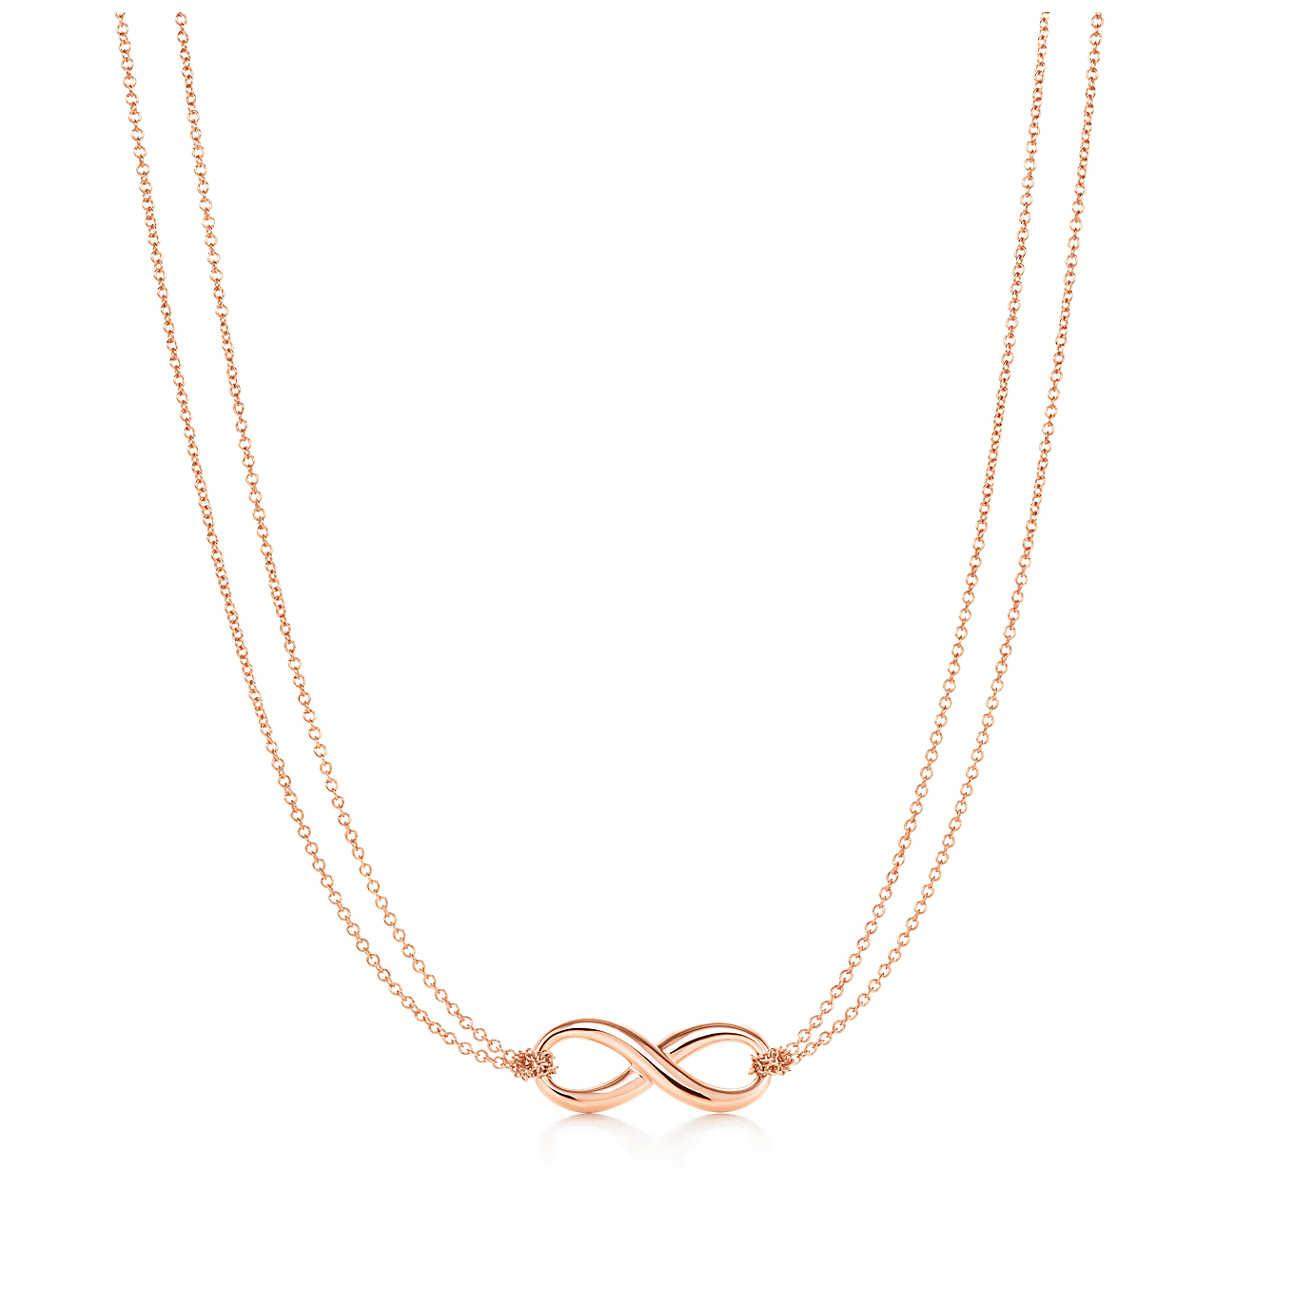 9a6a5db55 Tiffany & Co. Tiffany Infinity Pendant In 18k Rose Gold in Pink - Lyst